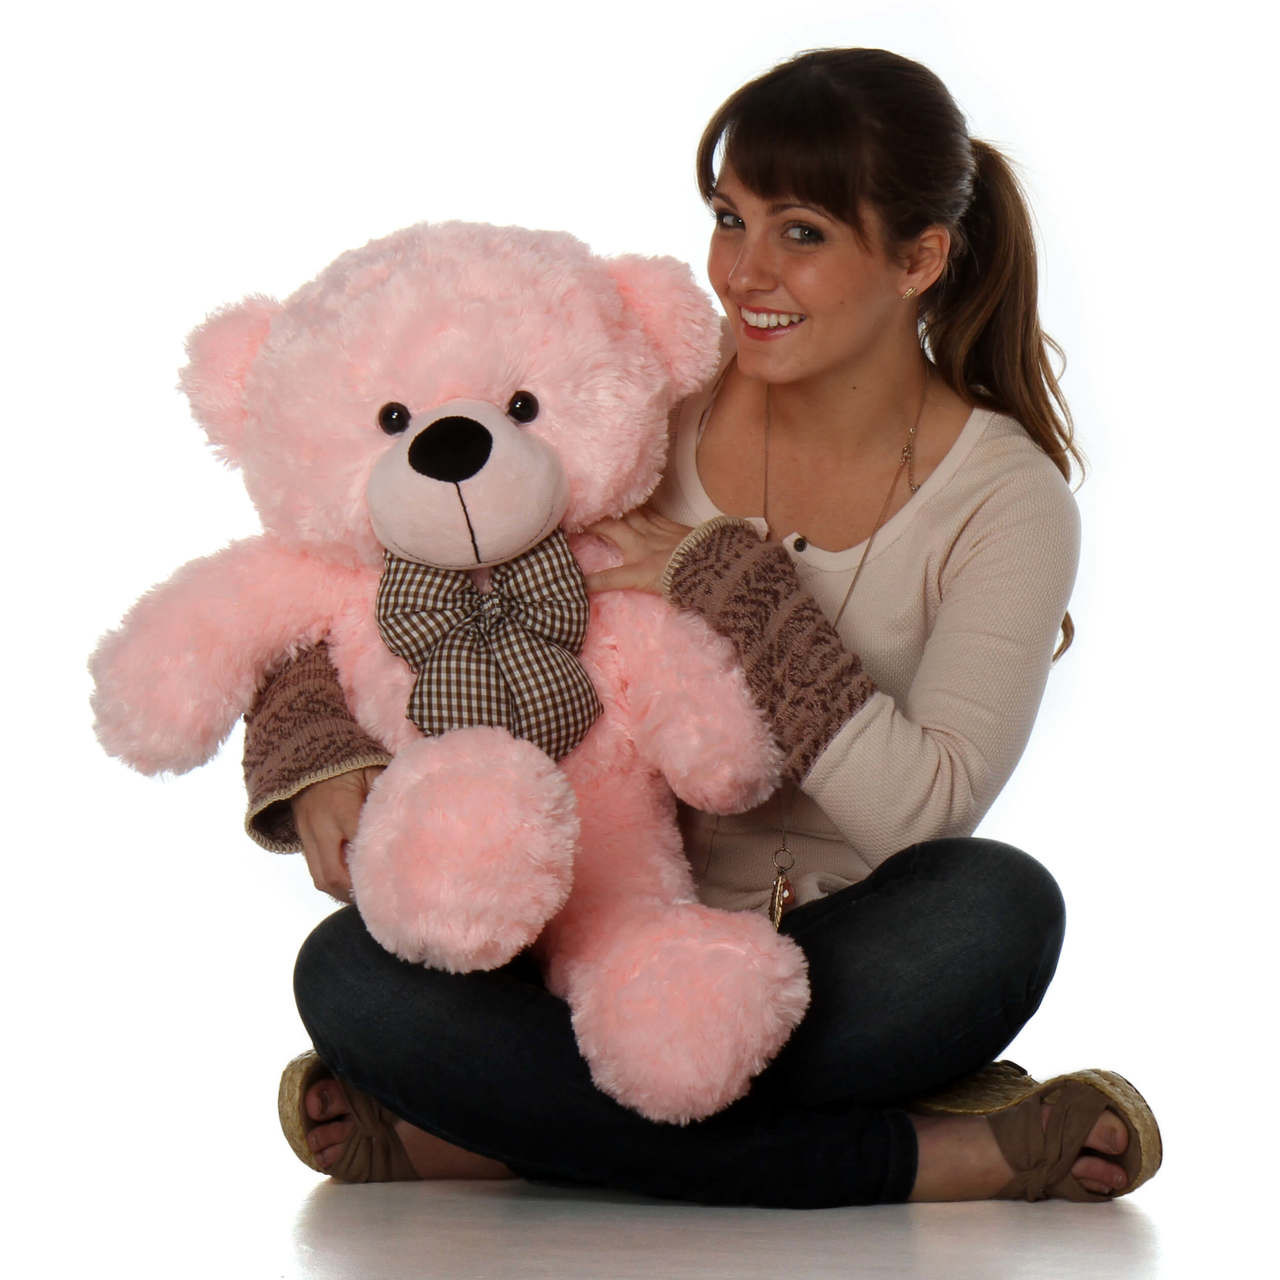 30IN LADY CUDDLES SOFT AND HUGGABLE PINK TEDDY BEAR